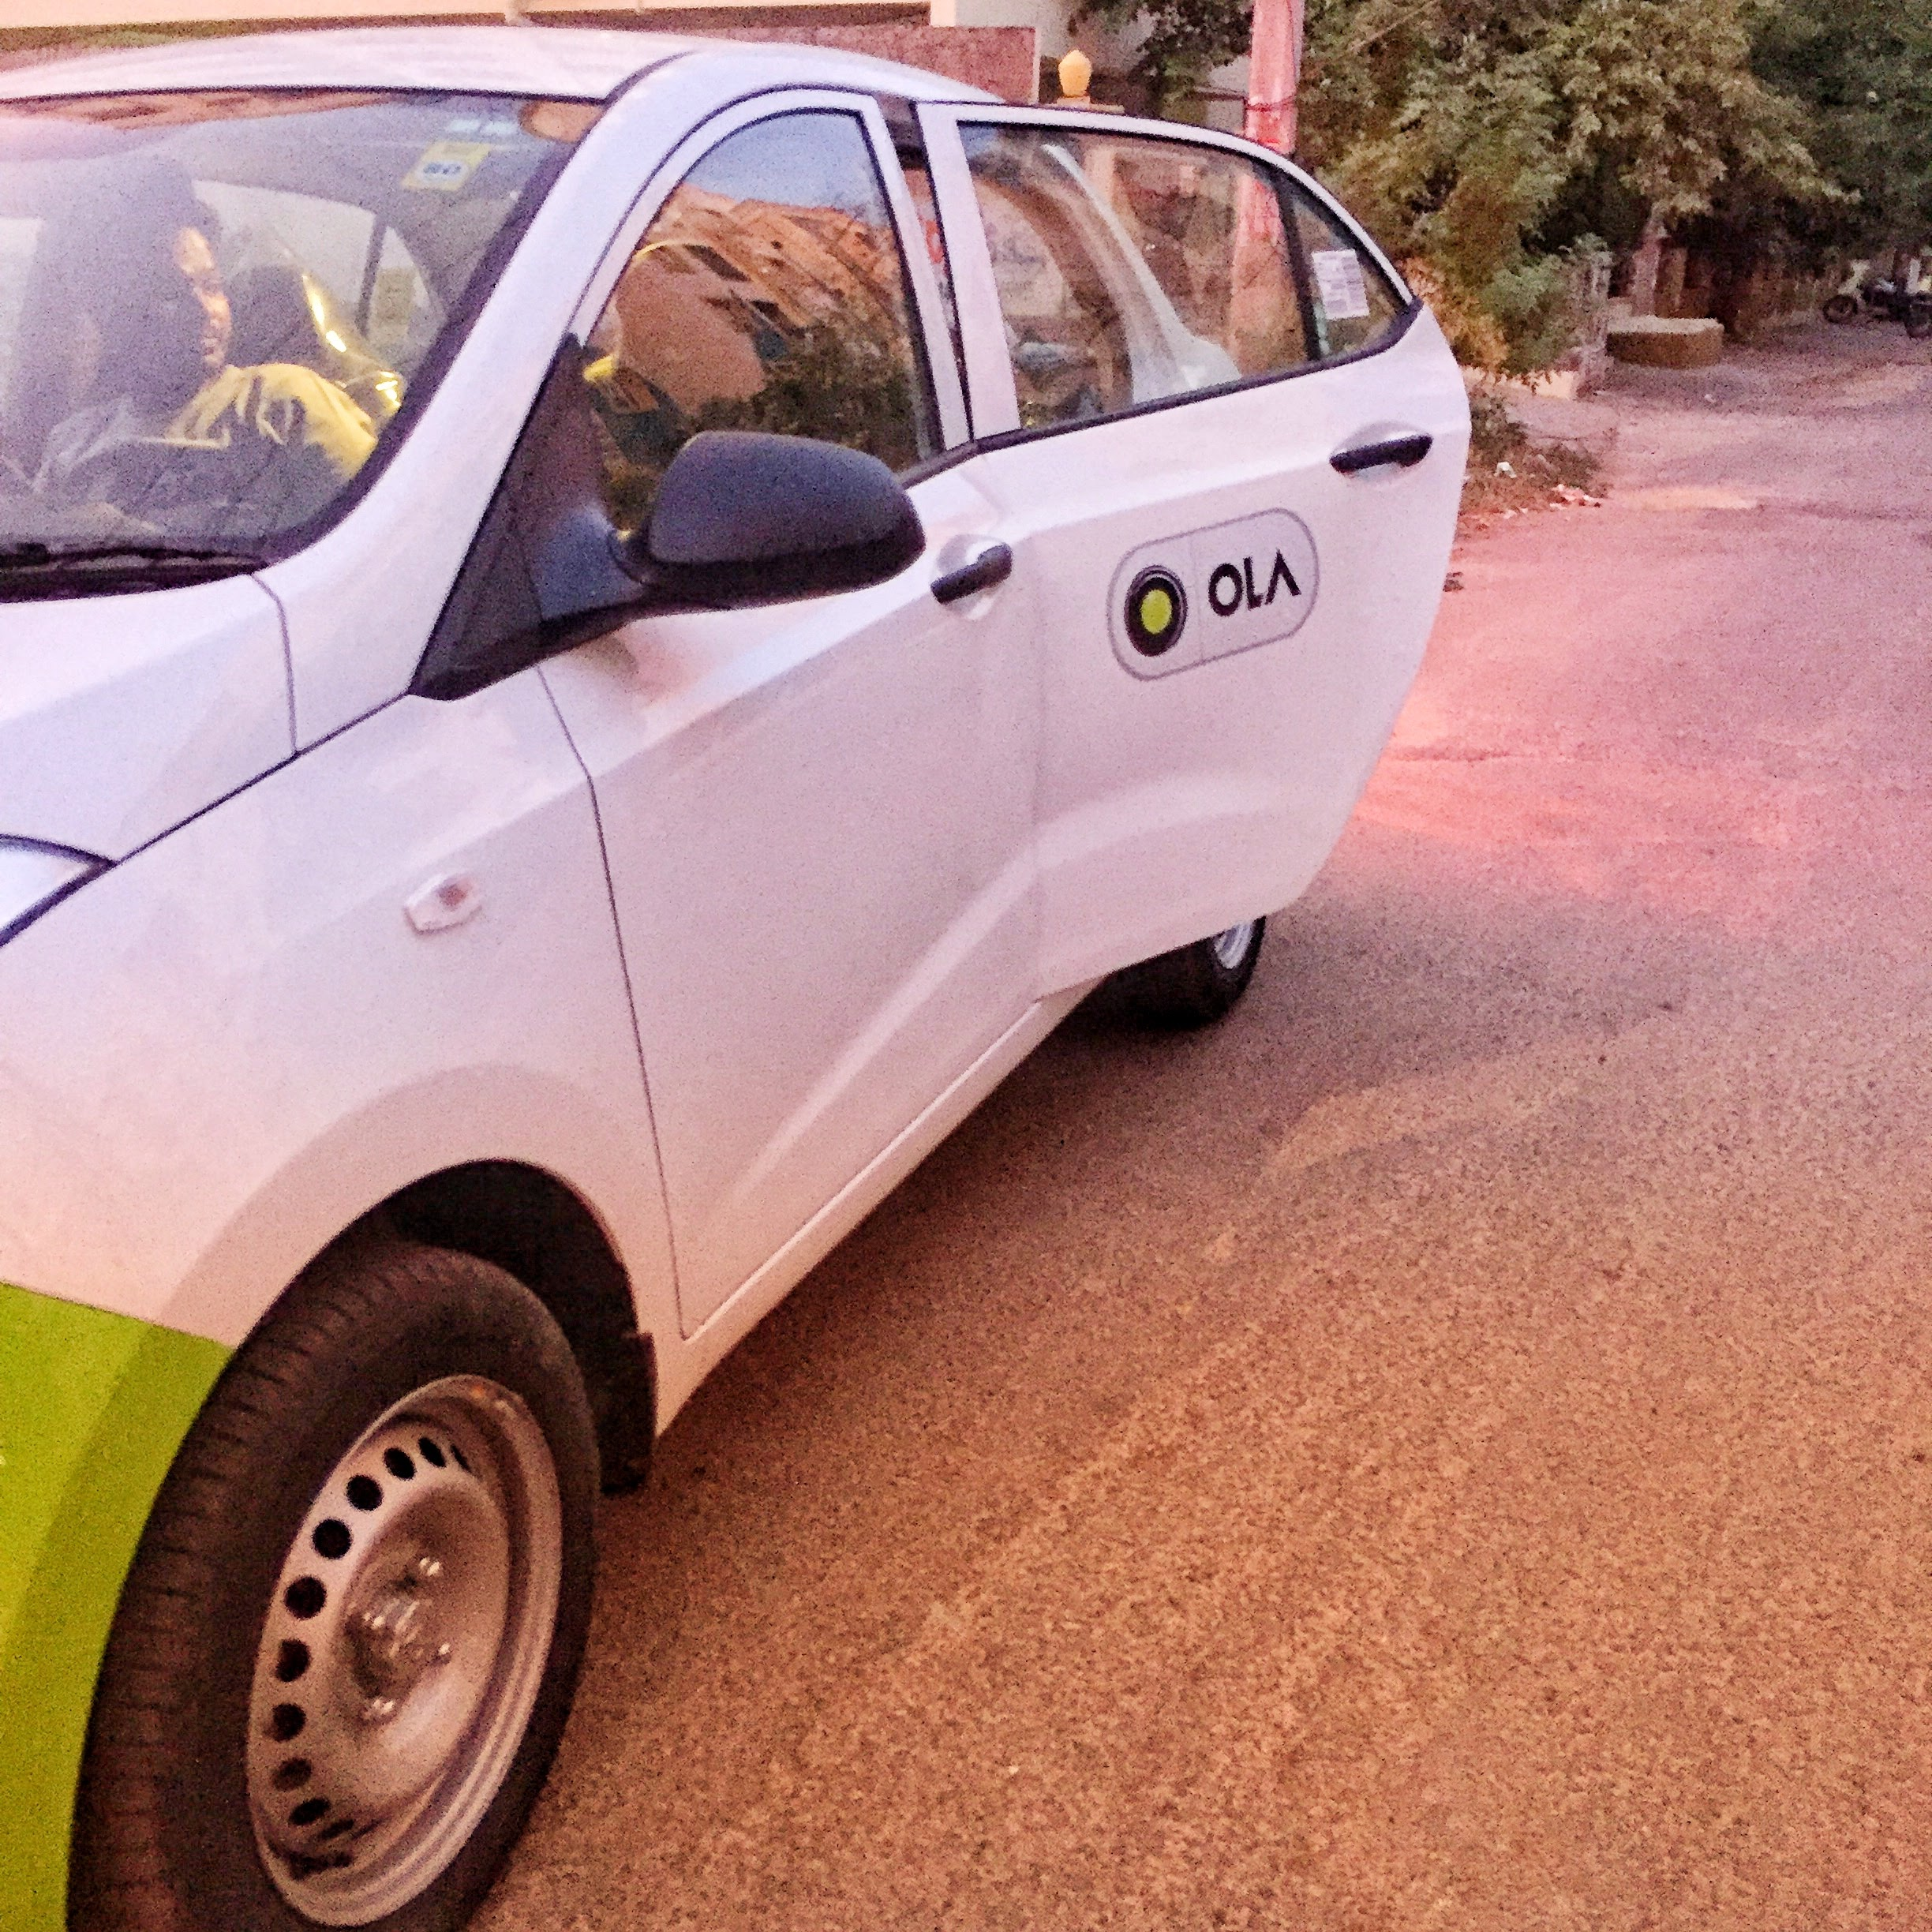 My Ola Rental Cab!